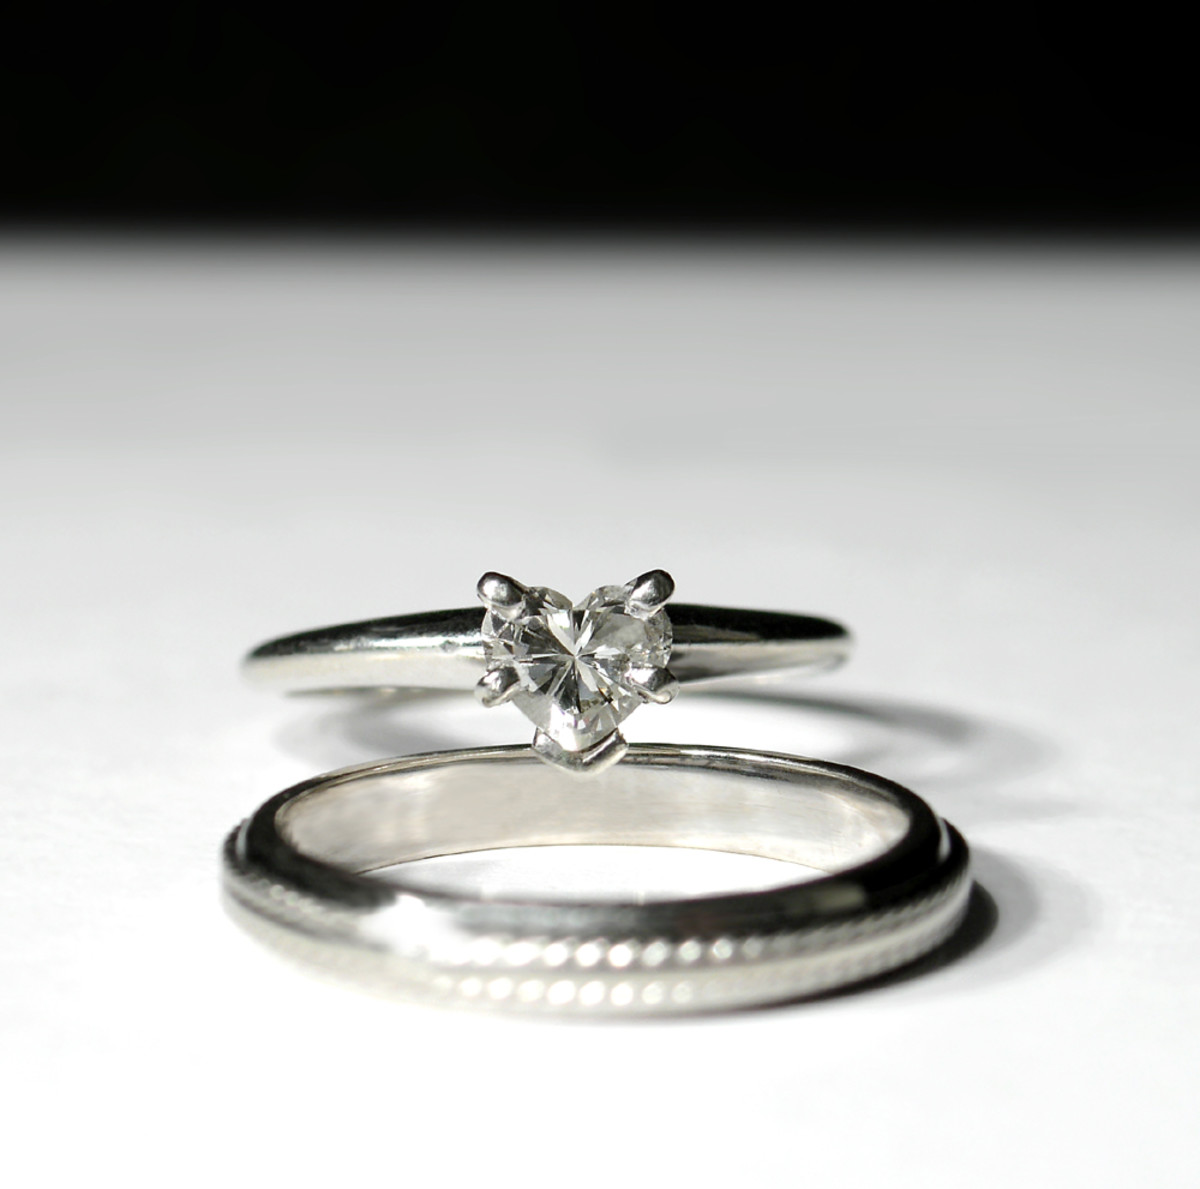 Wedding Ring Costs: How Much Should An Engagement Ring Cost?